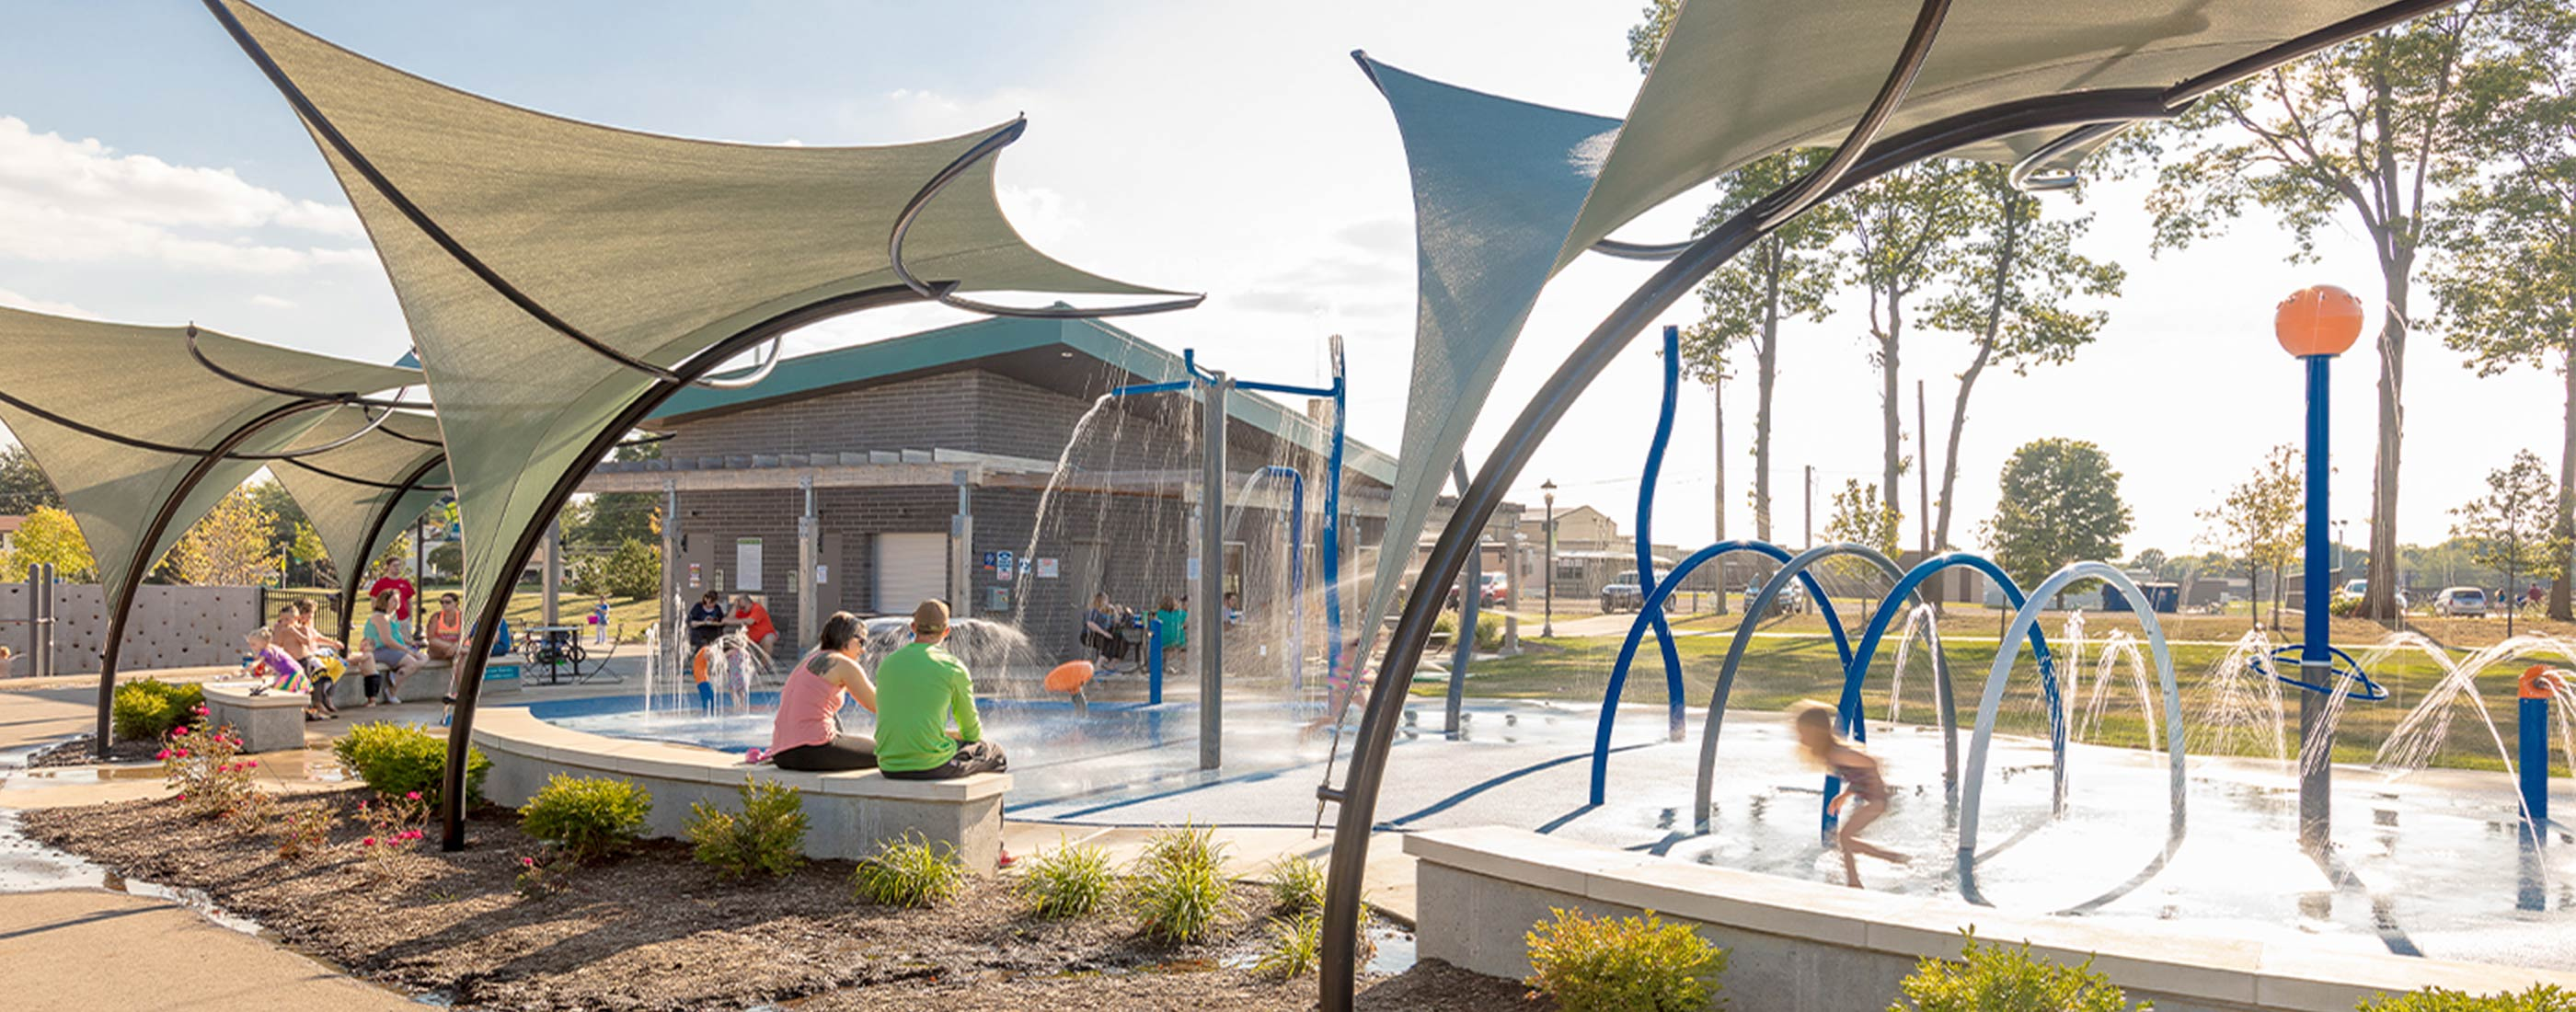 The City of Green Central Park includes a splash pad with multiple play zones.